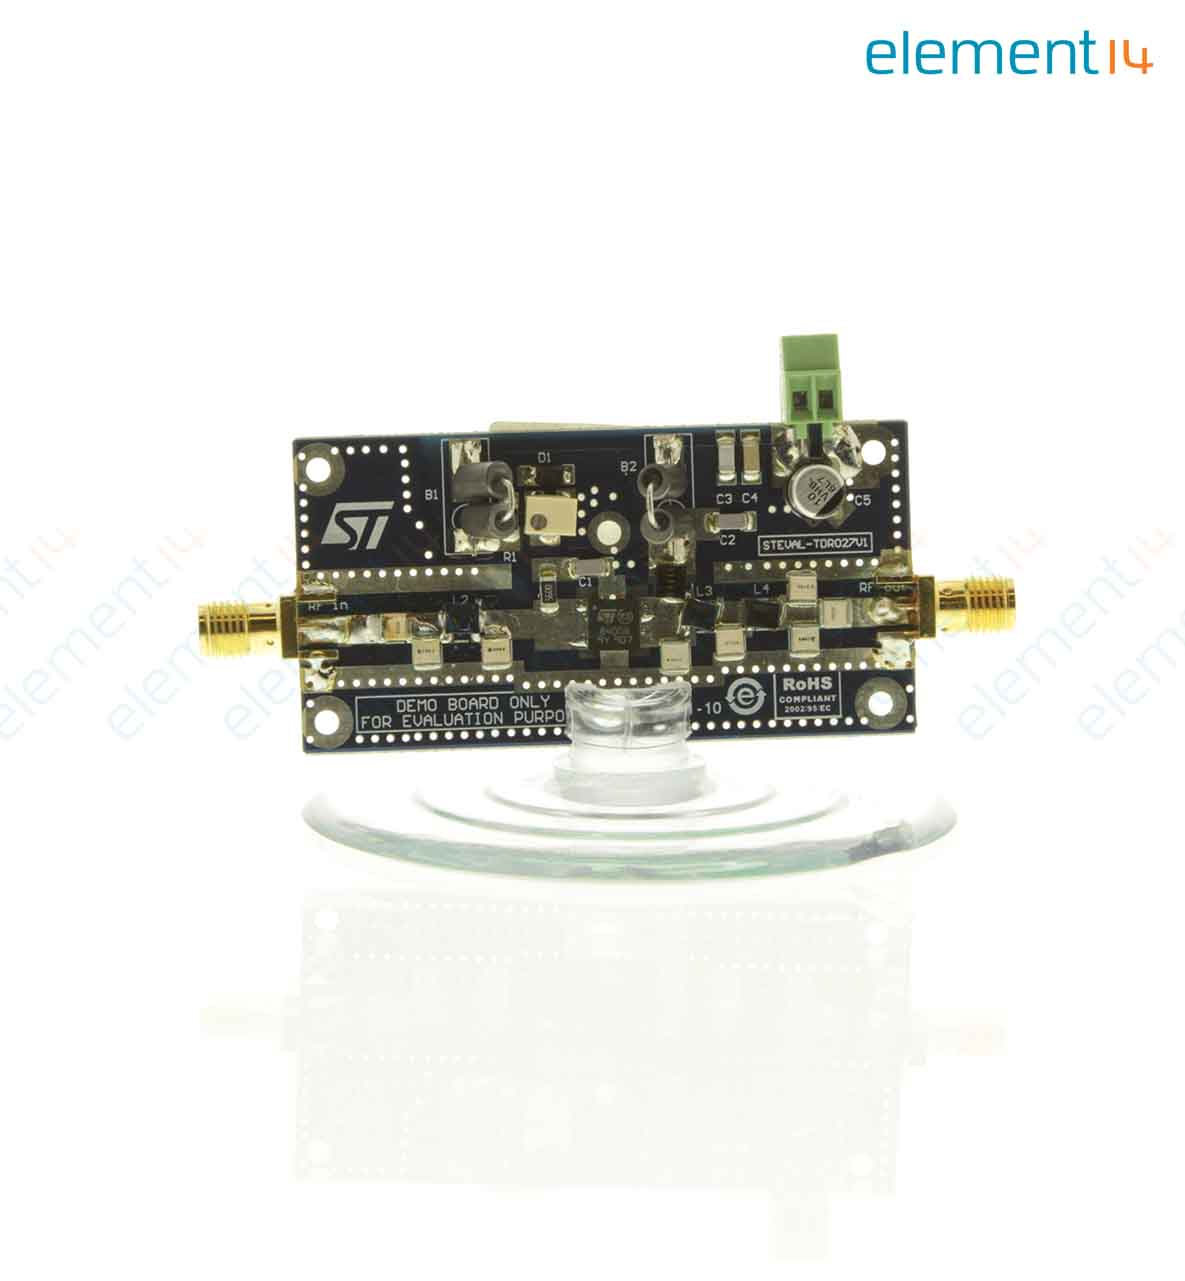 Steval Tdr027v1 Stmicroelectronics Demonstration Board Rfid Electronics Learning Circuits Webonly Products Technology Add To Compare